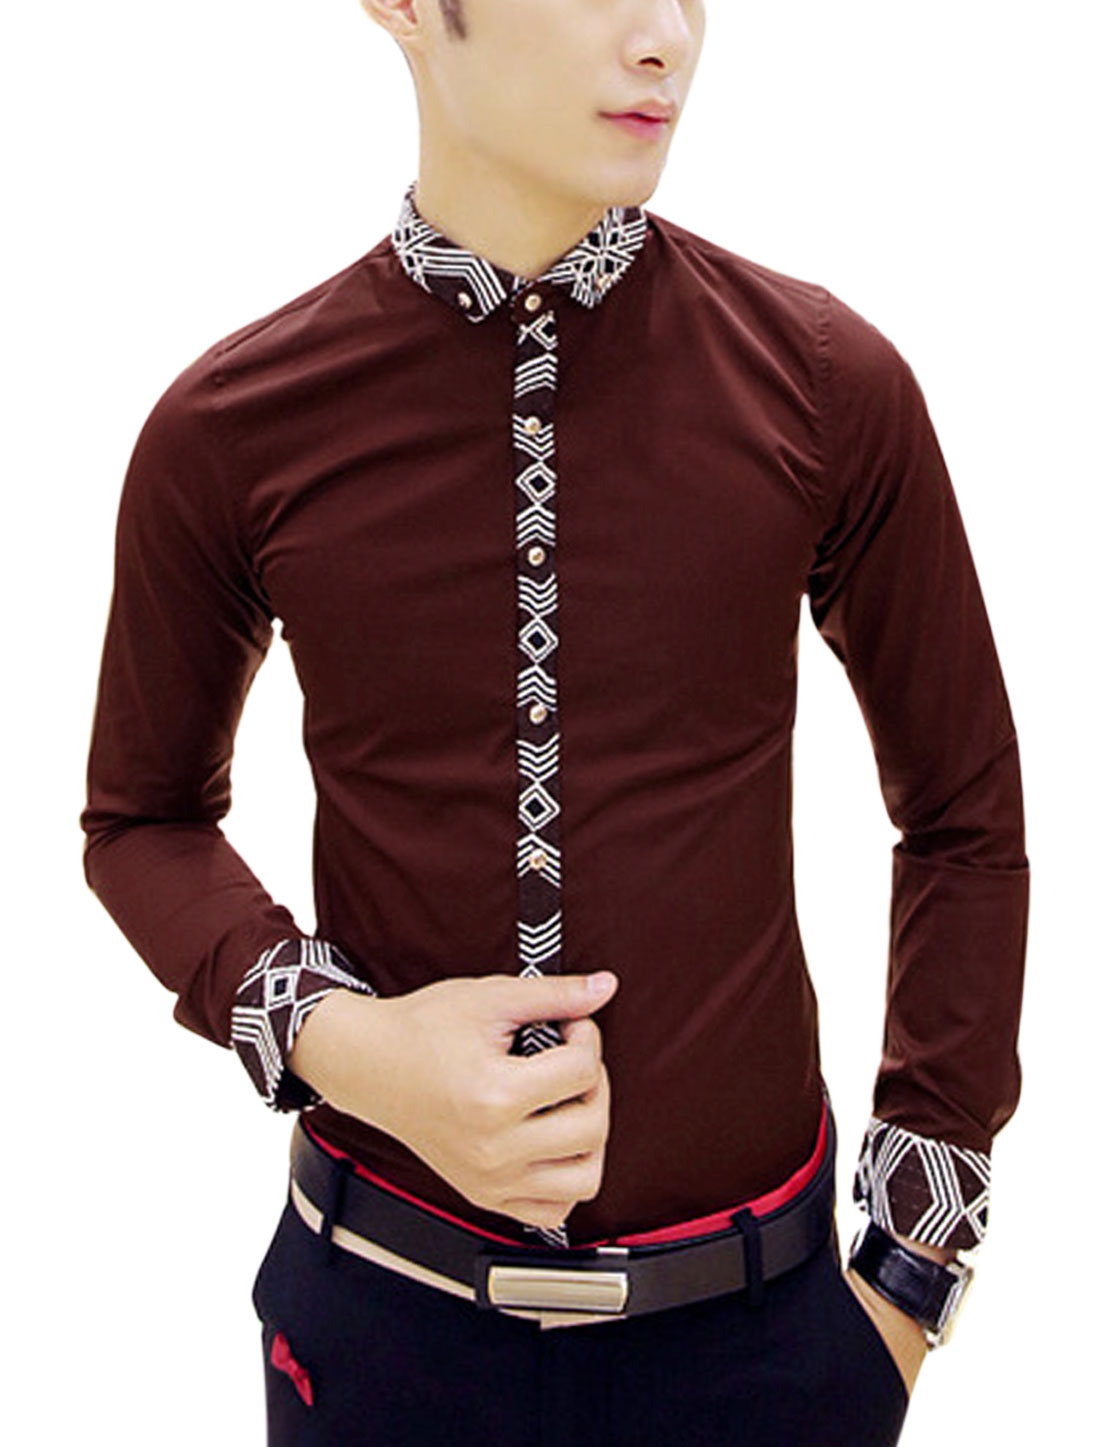 Man Burgundy Full Sleeves Point Collar Button Down Contrast Trims Shirt S